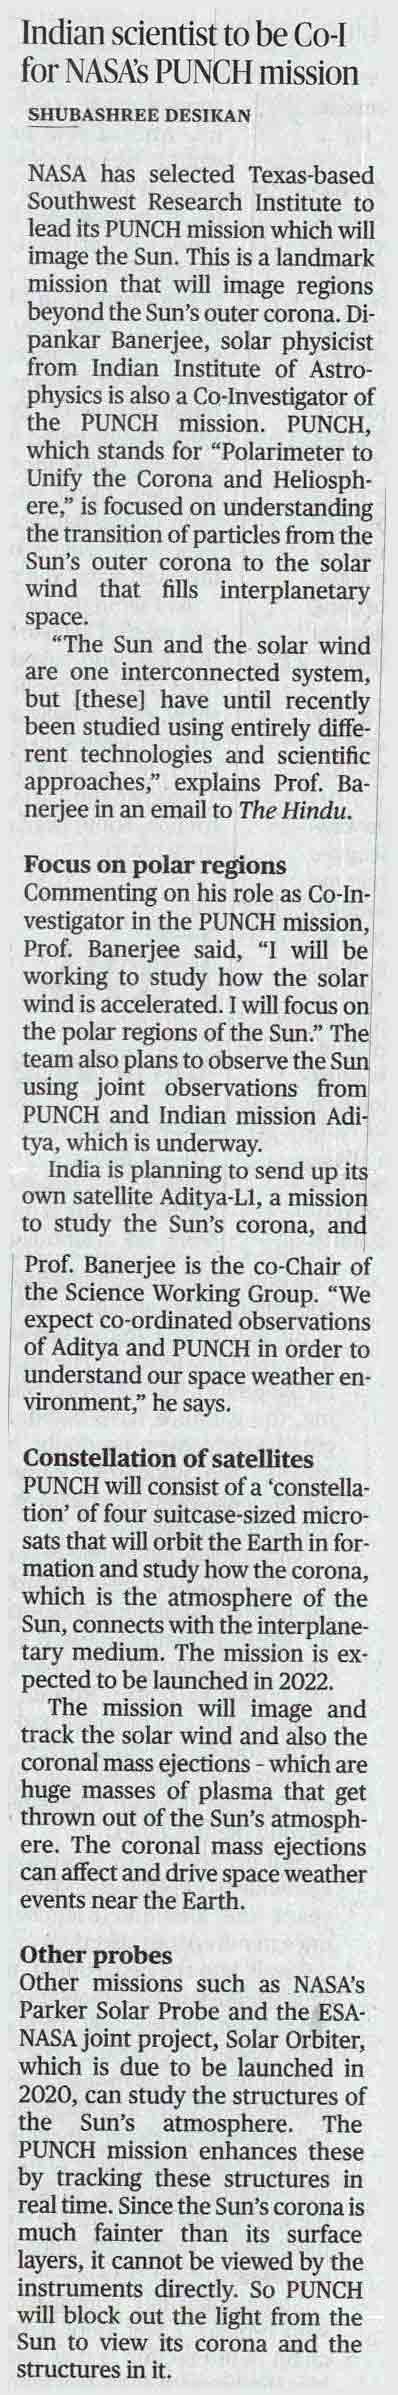 Indian scientist to be Co-I for NASA's PUNCH mission